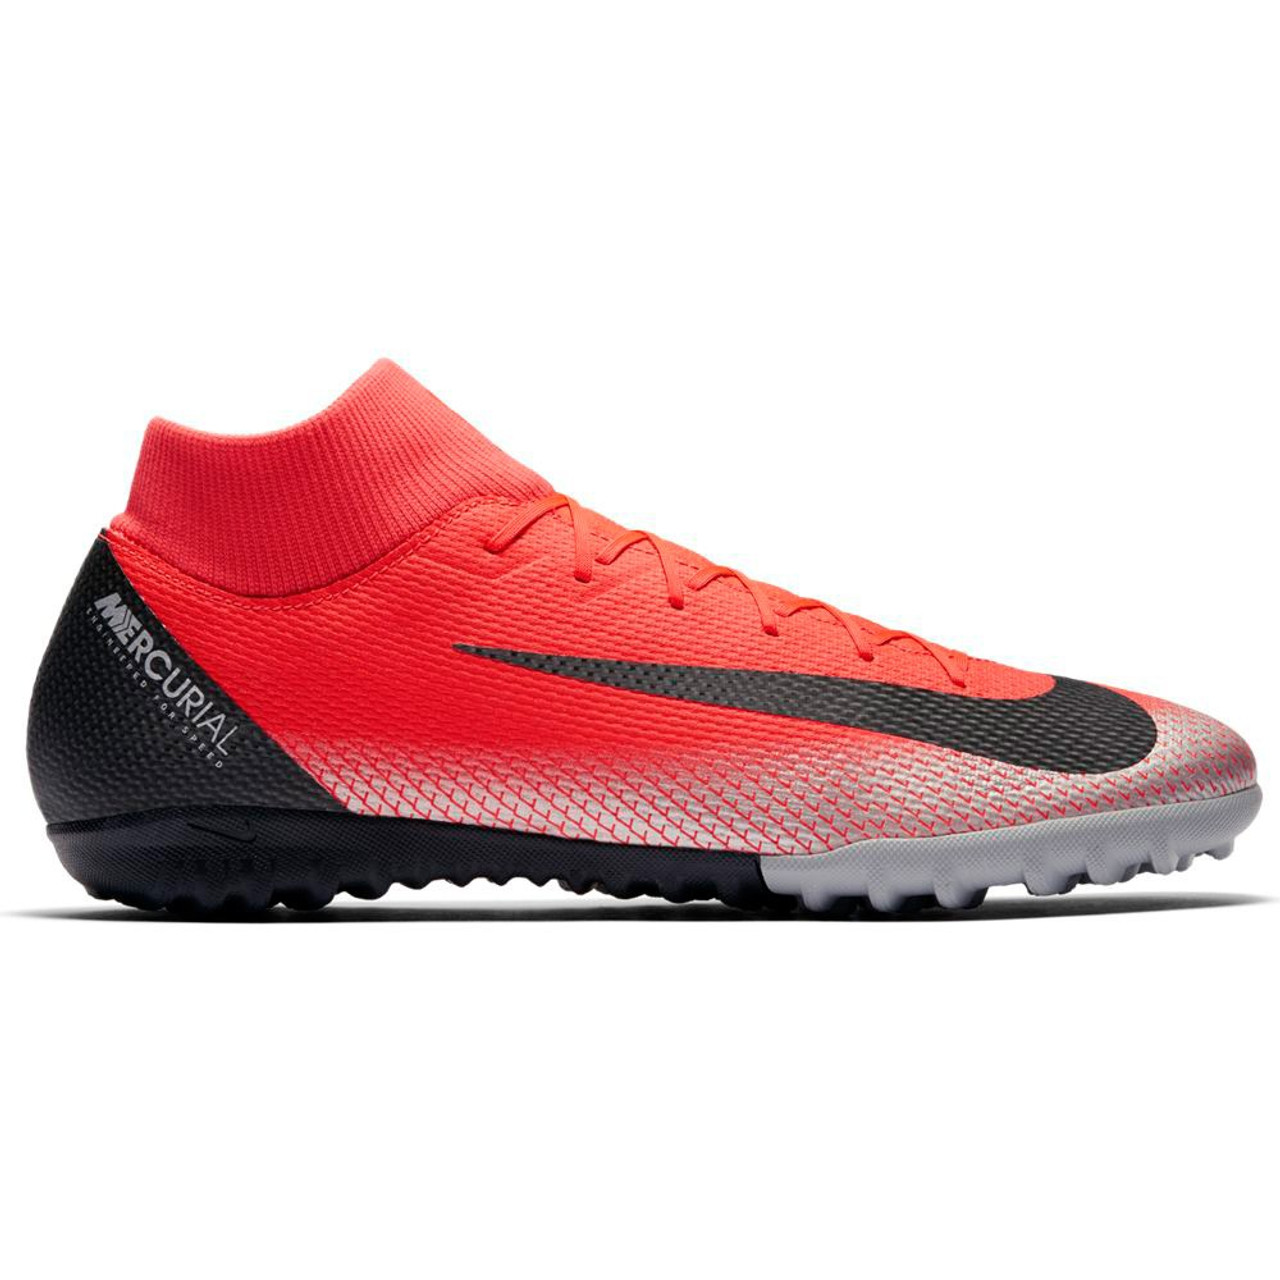 13cc3a28a0d NIKE SUPERFLY 6 ACADEMY CR7 TF CRIMSON - Soccer Plus